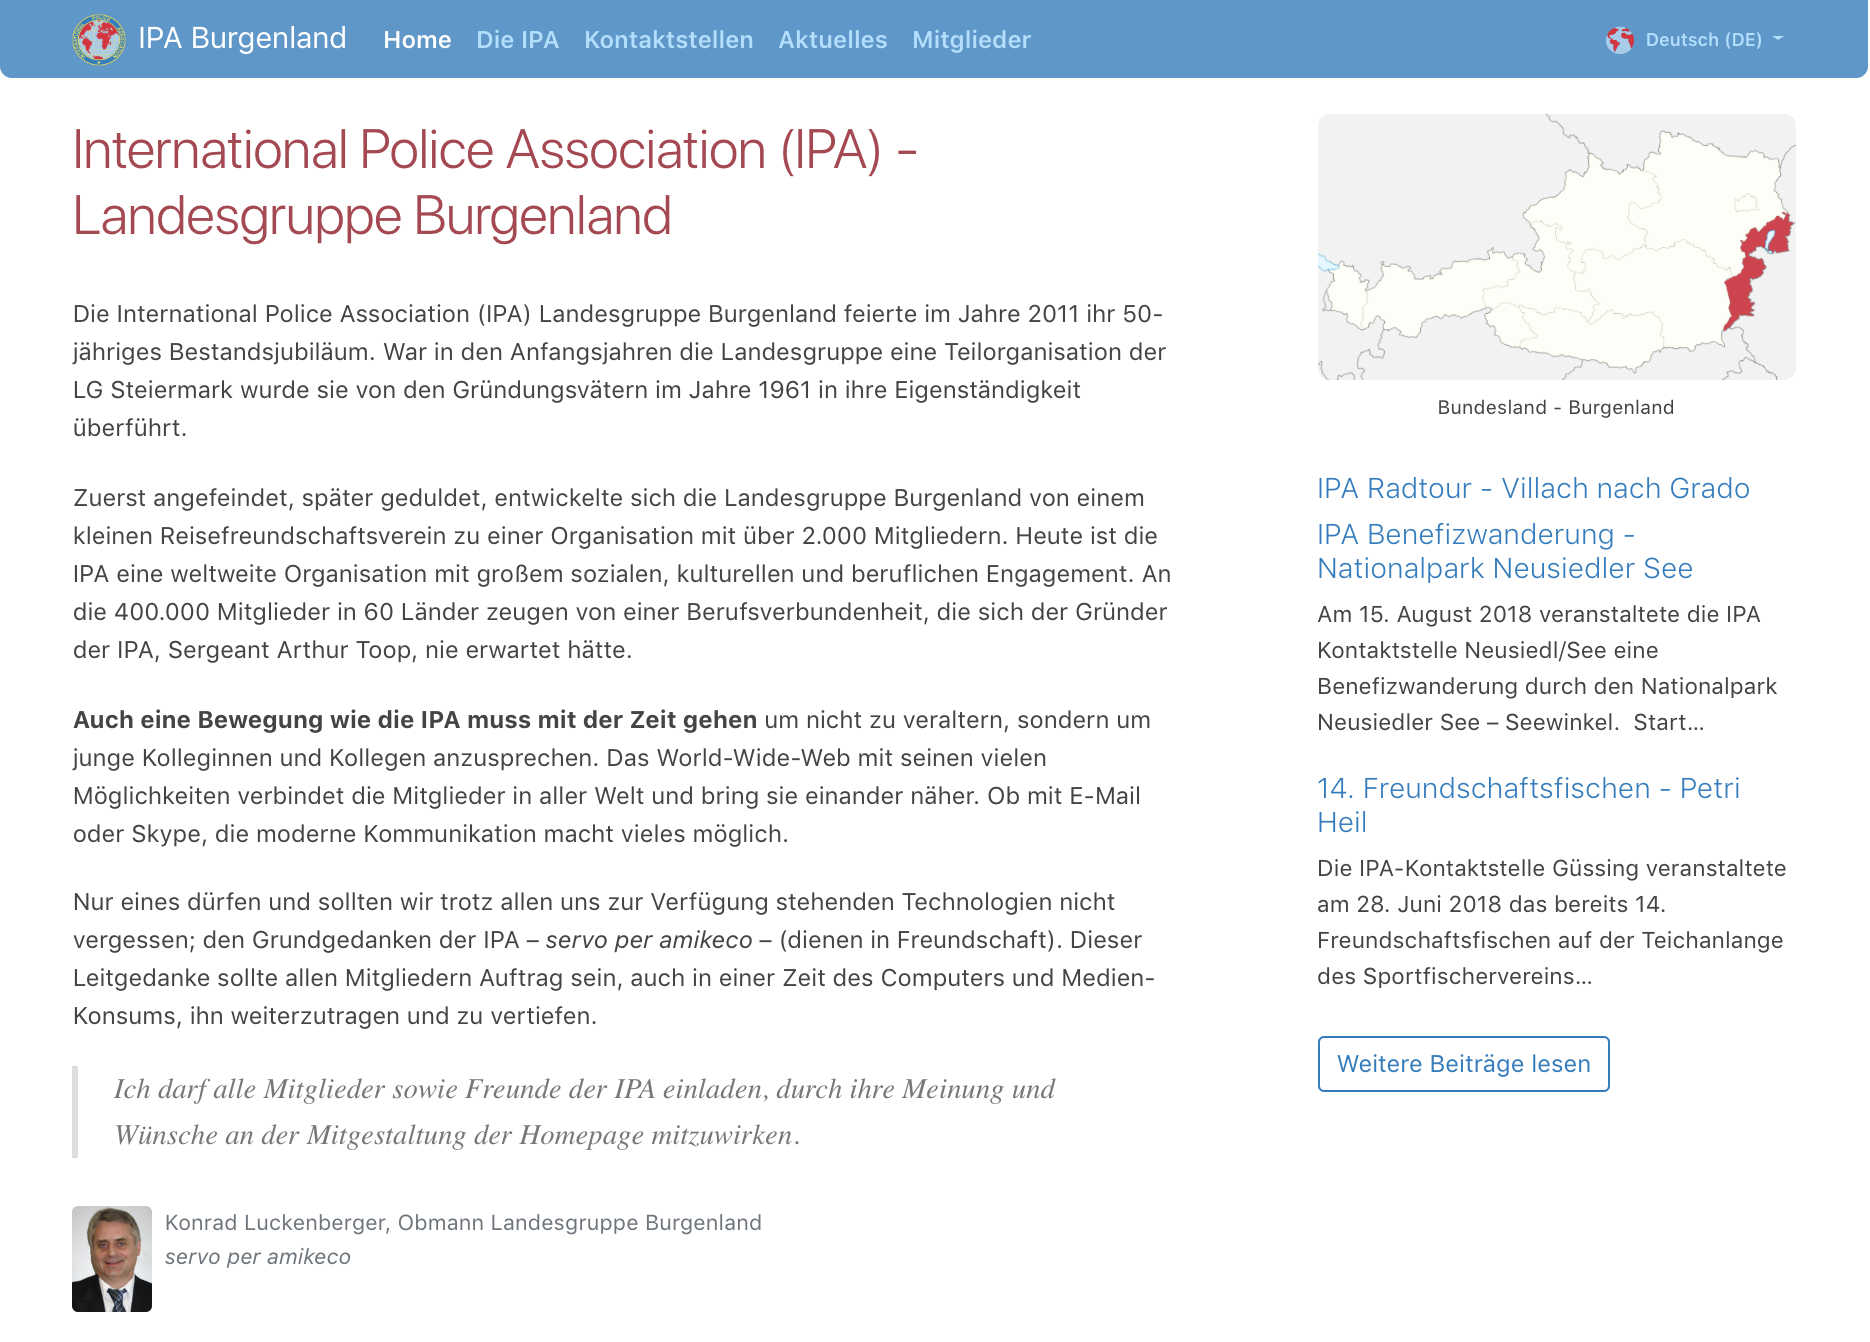 International Police Association Burgenland